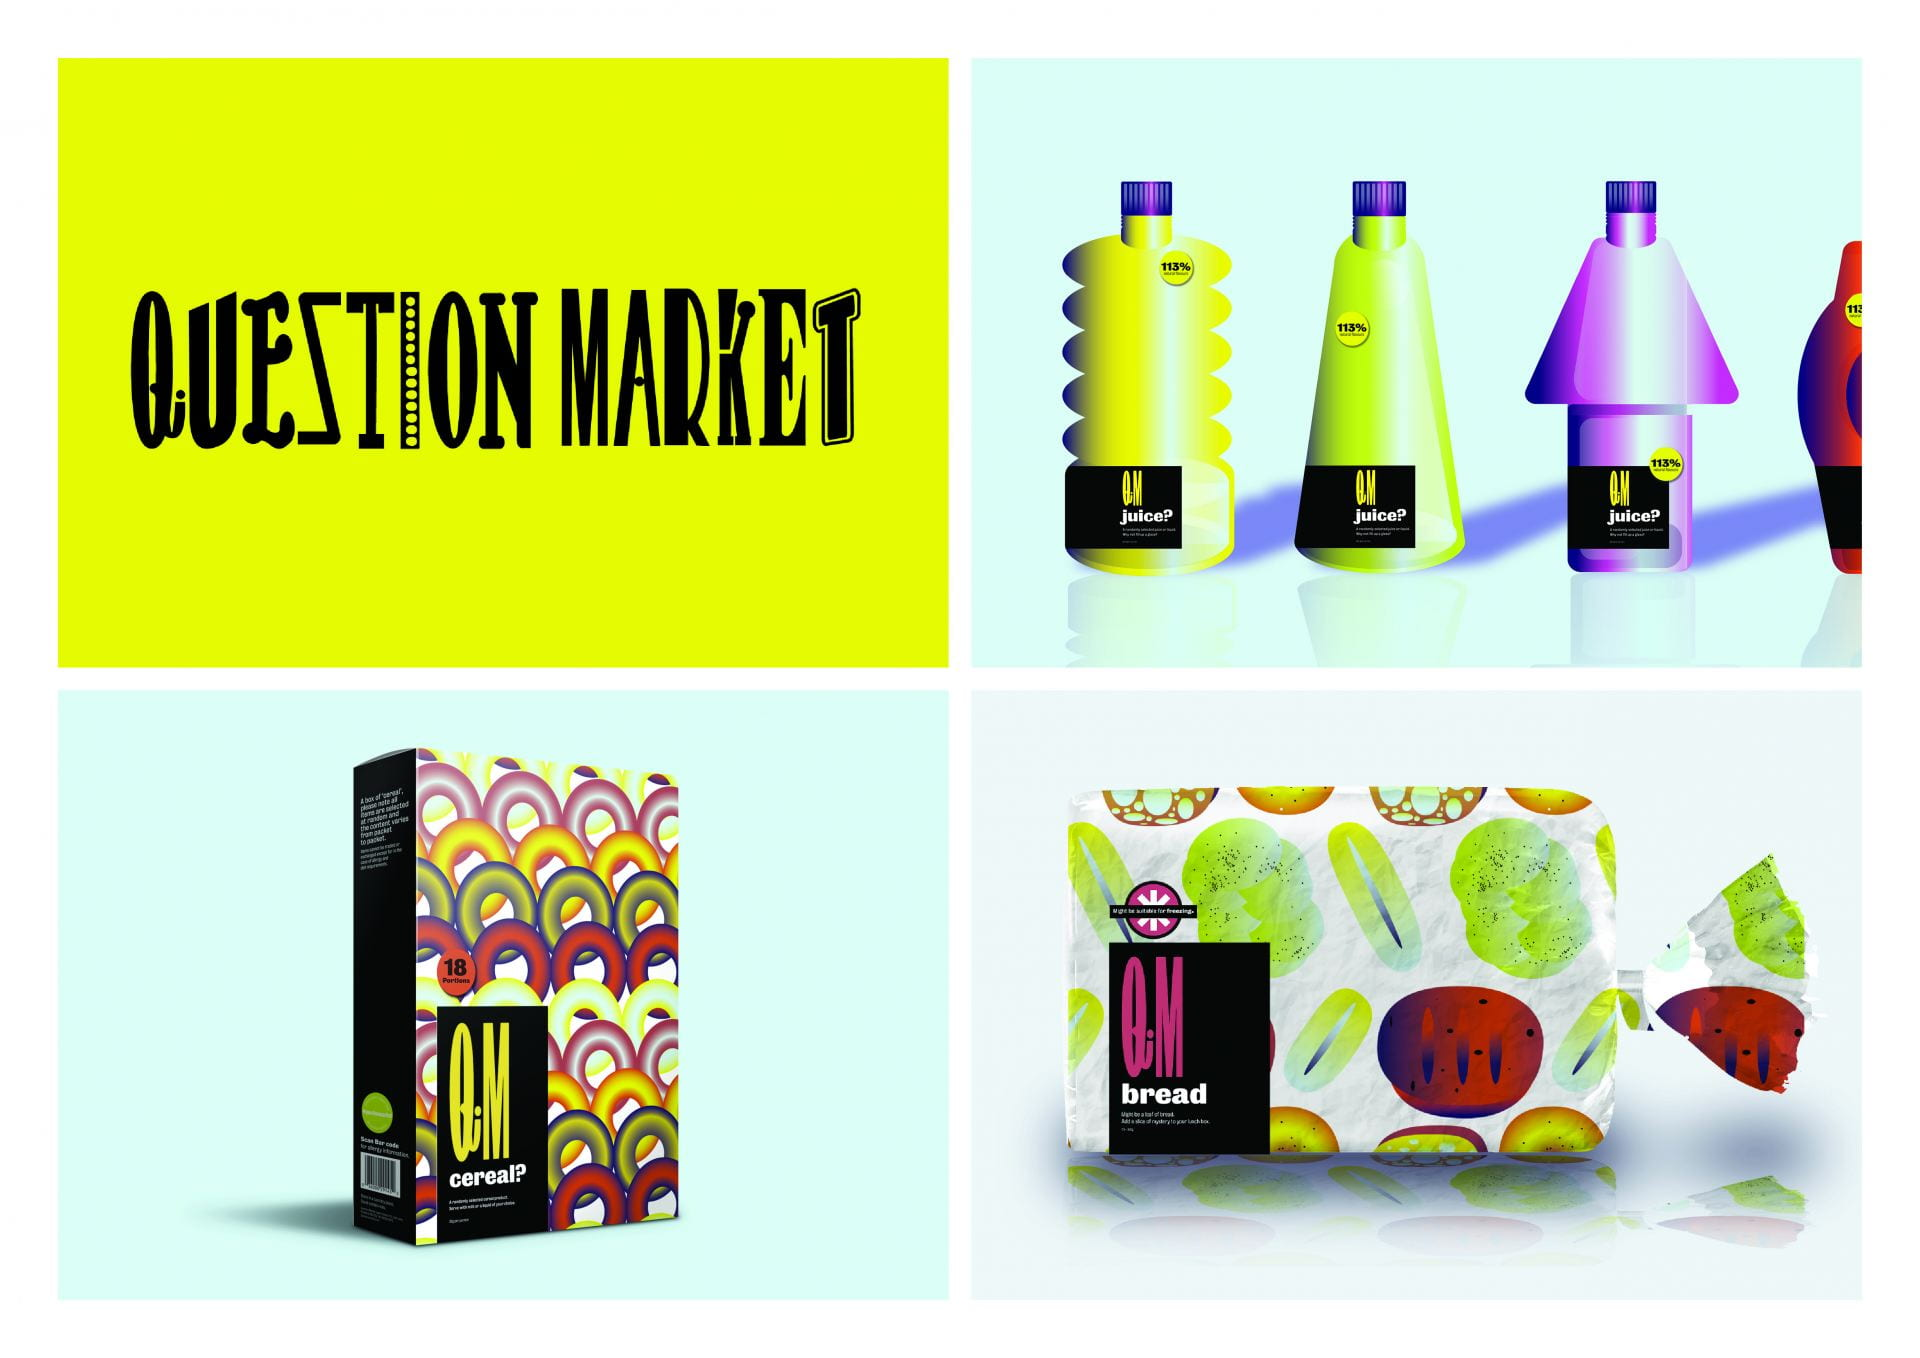 Bottles, a cereal box and a loaf of bread detailing bright patterns.